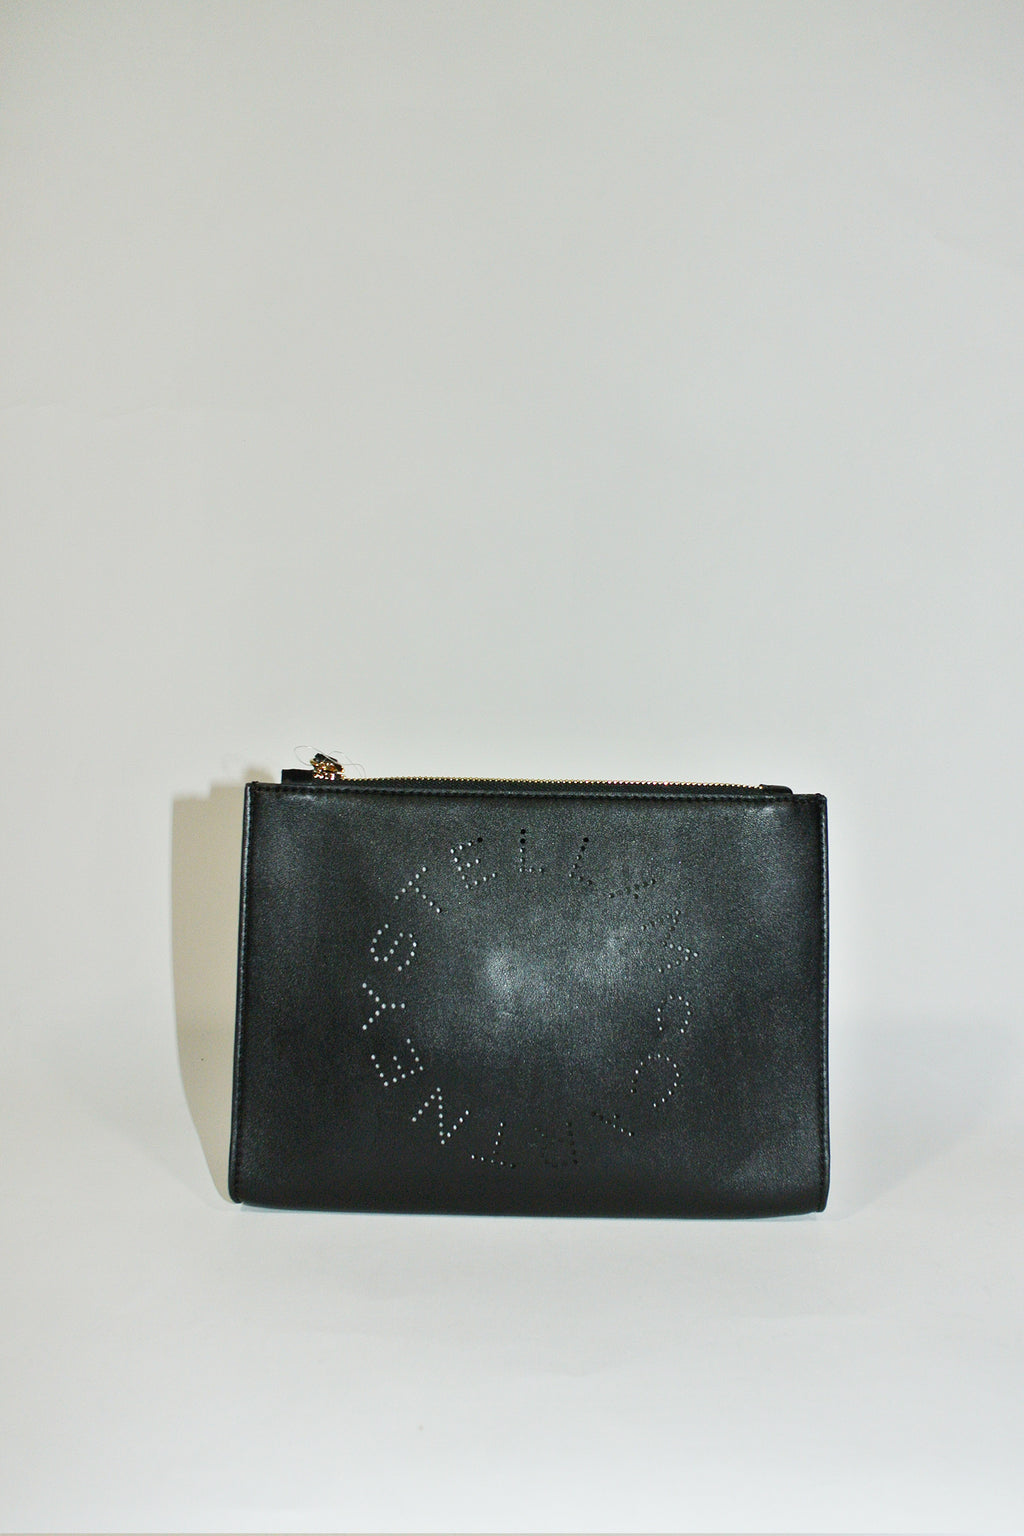 Stella McCartney Vegan Leather Black Logo Clutch Bag